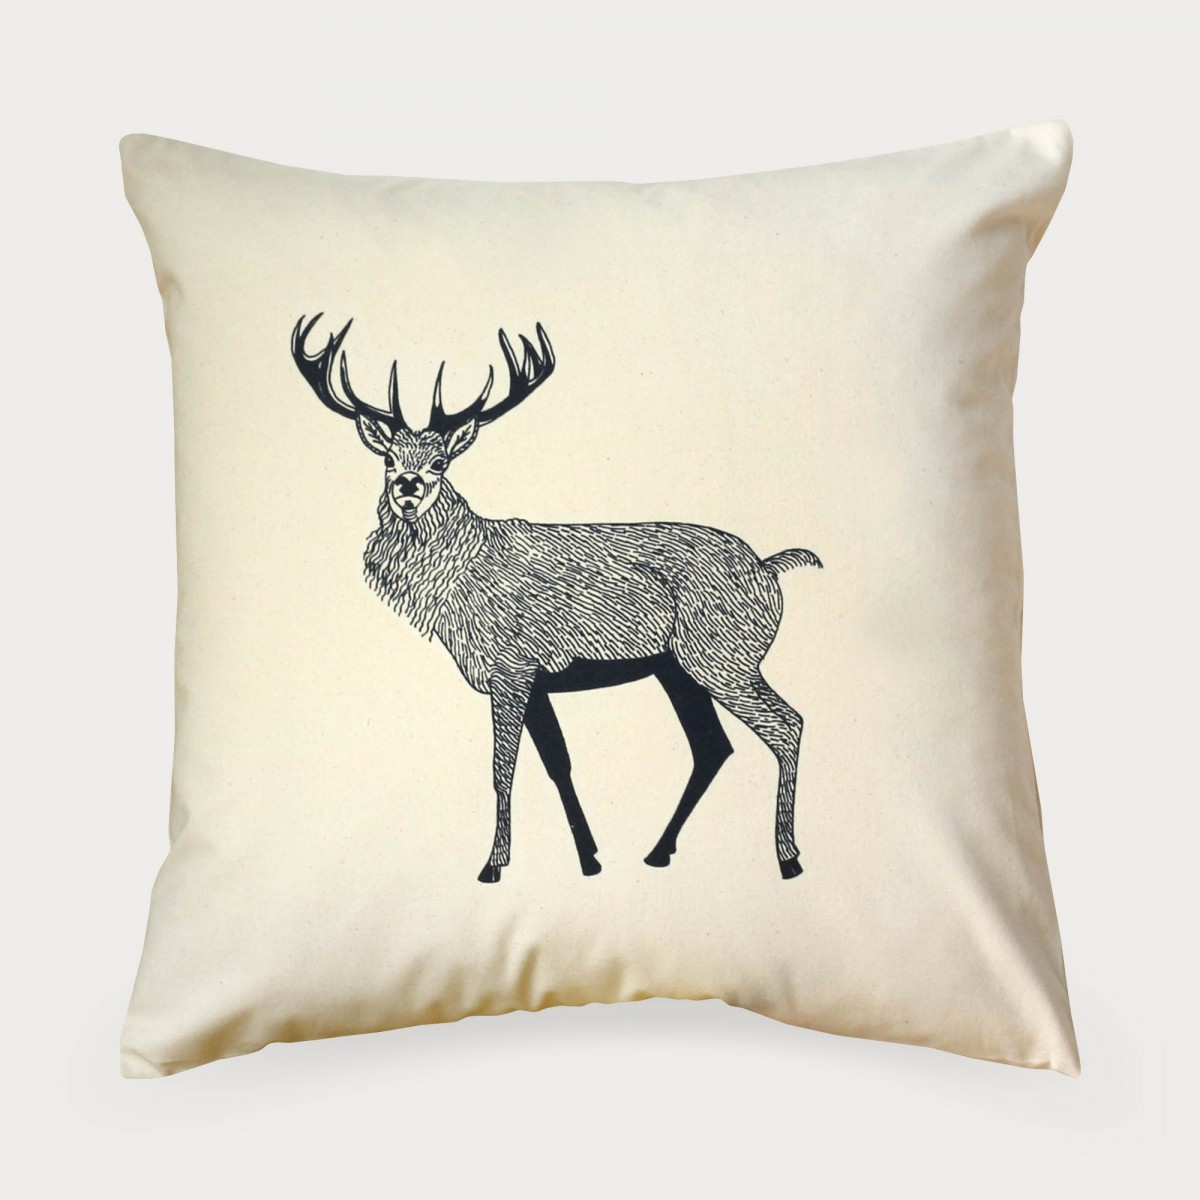 Stag Red Deer Cushion Cover